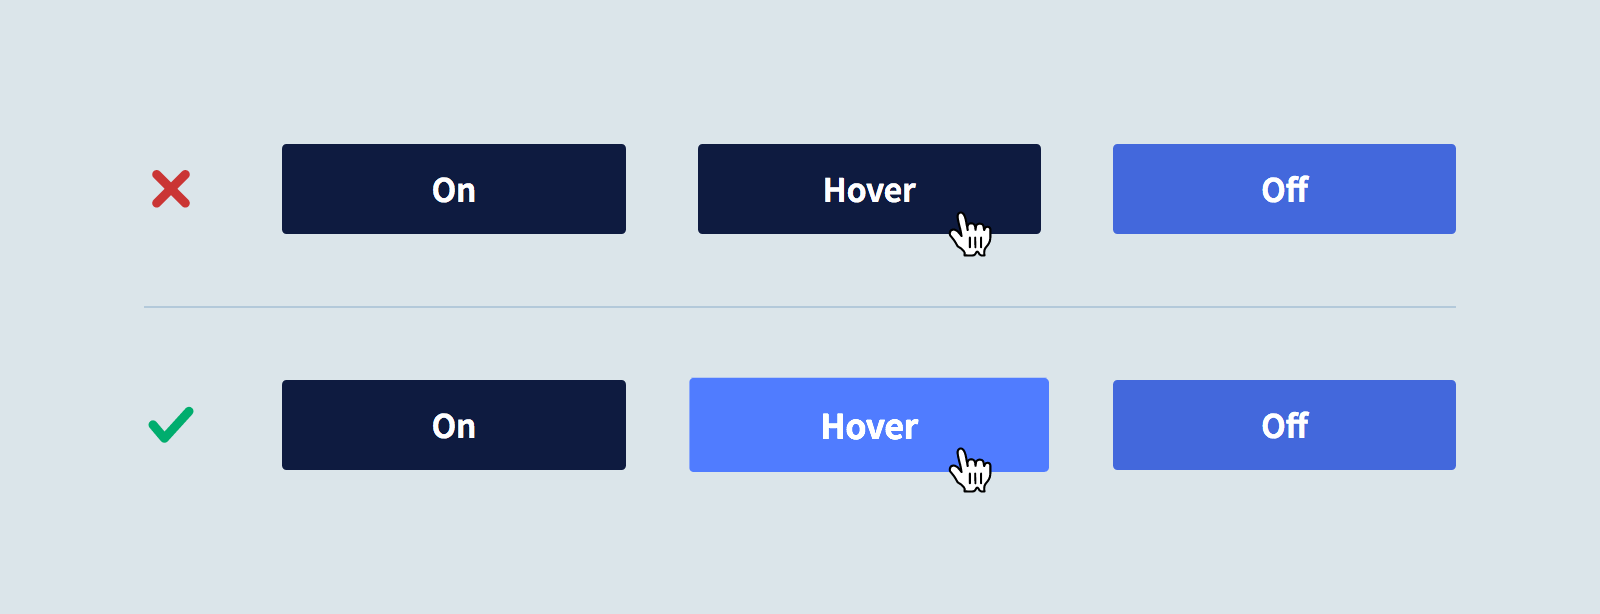 A button with different visual states